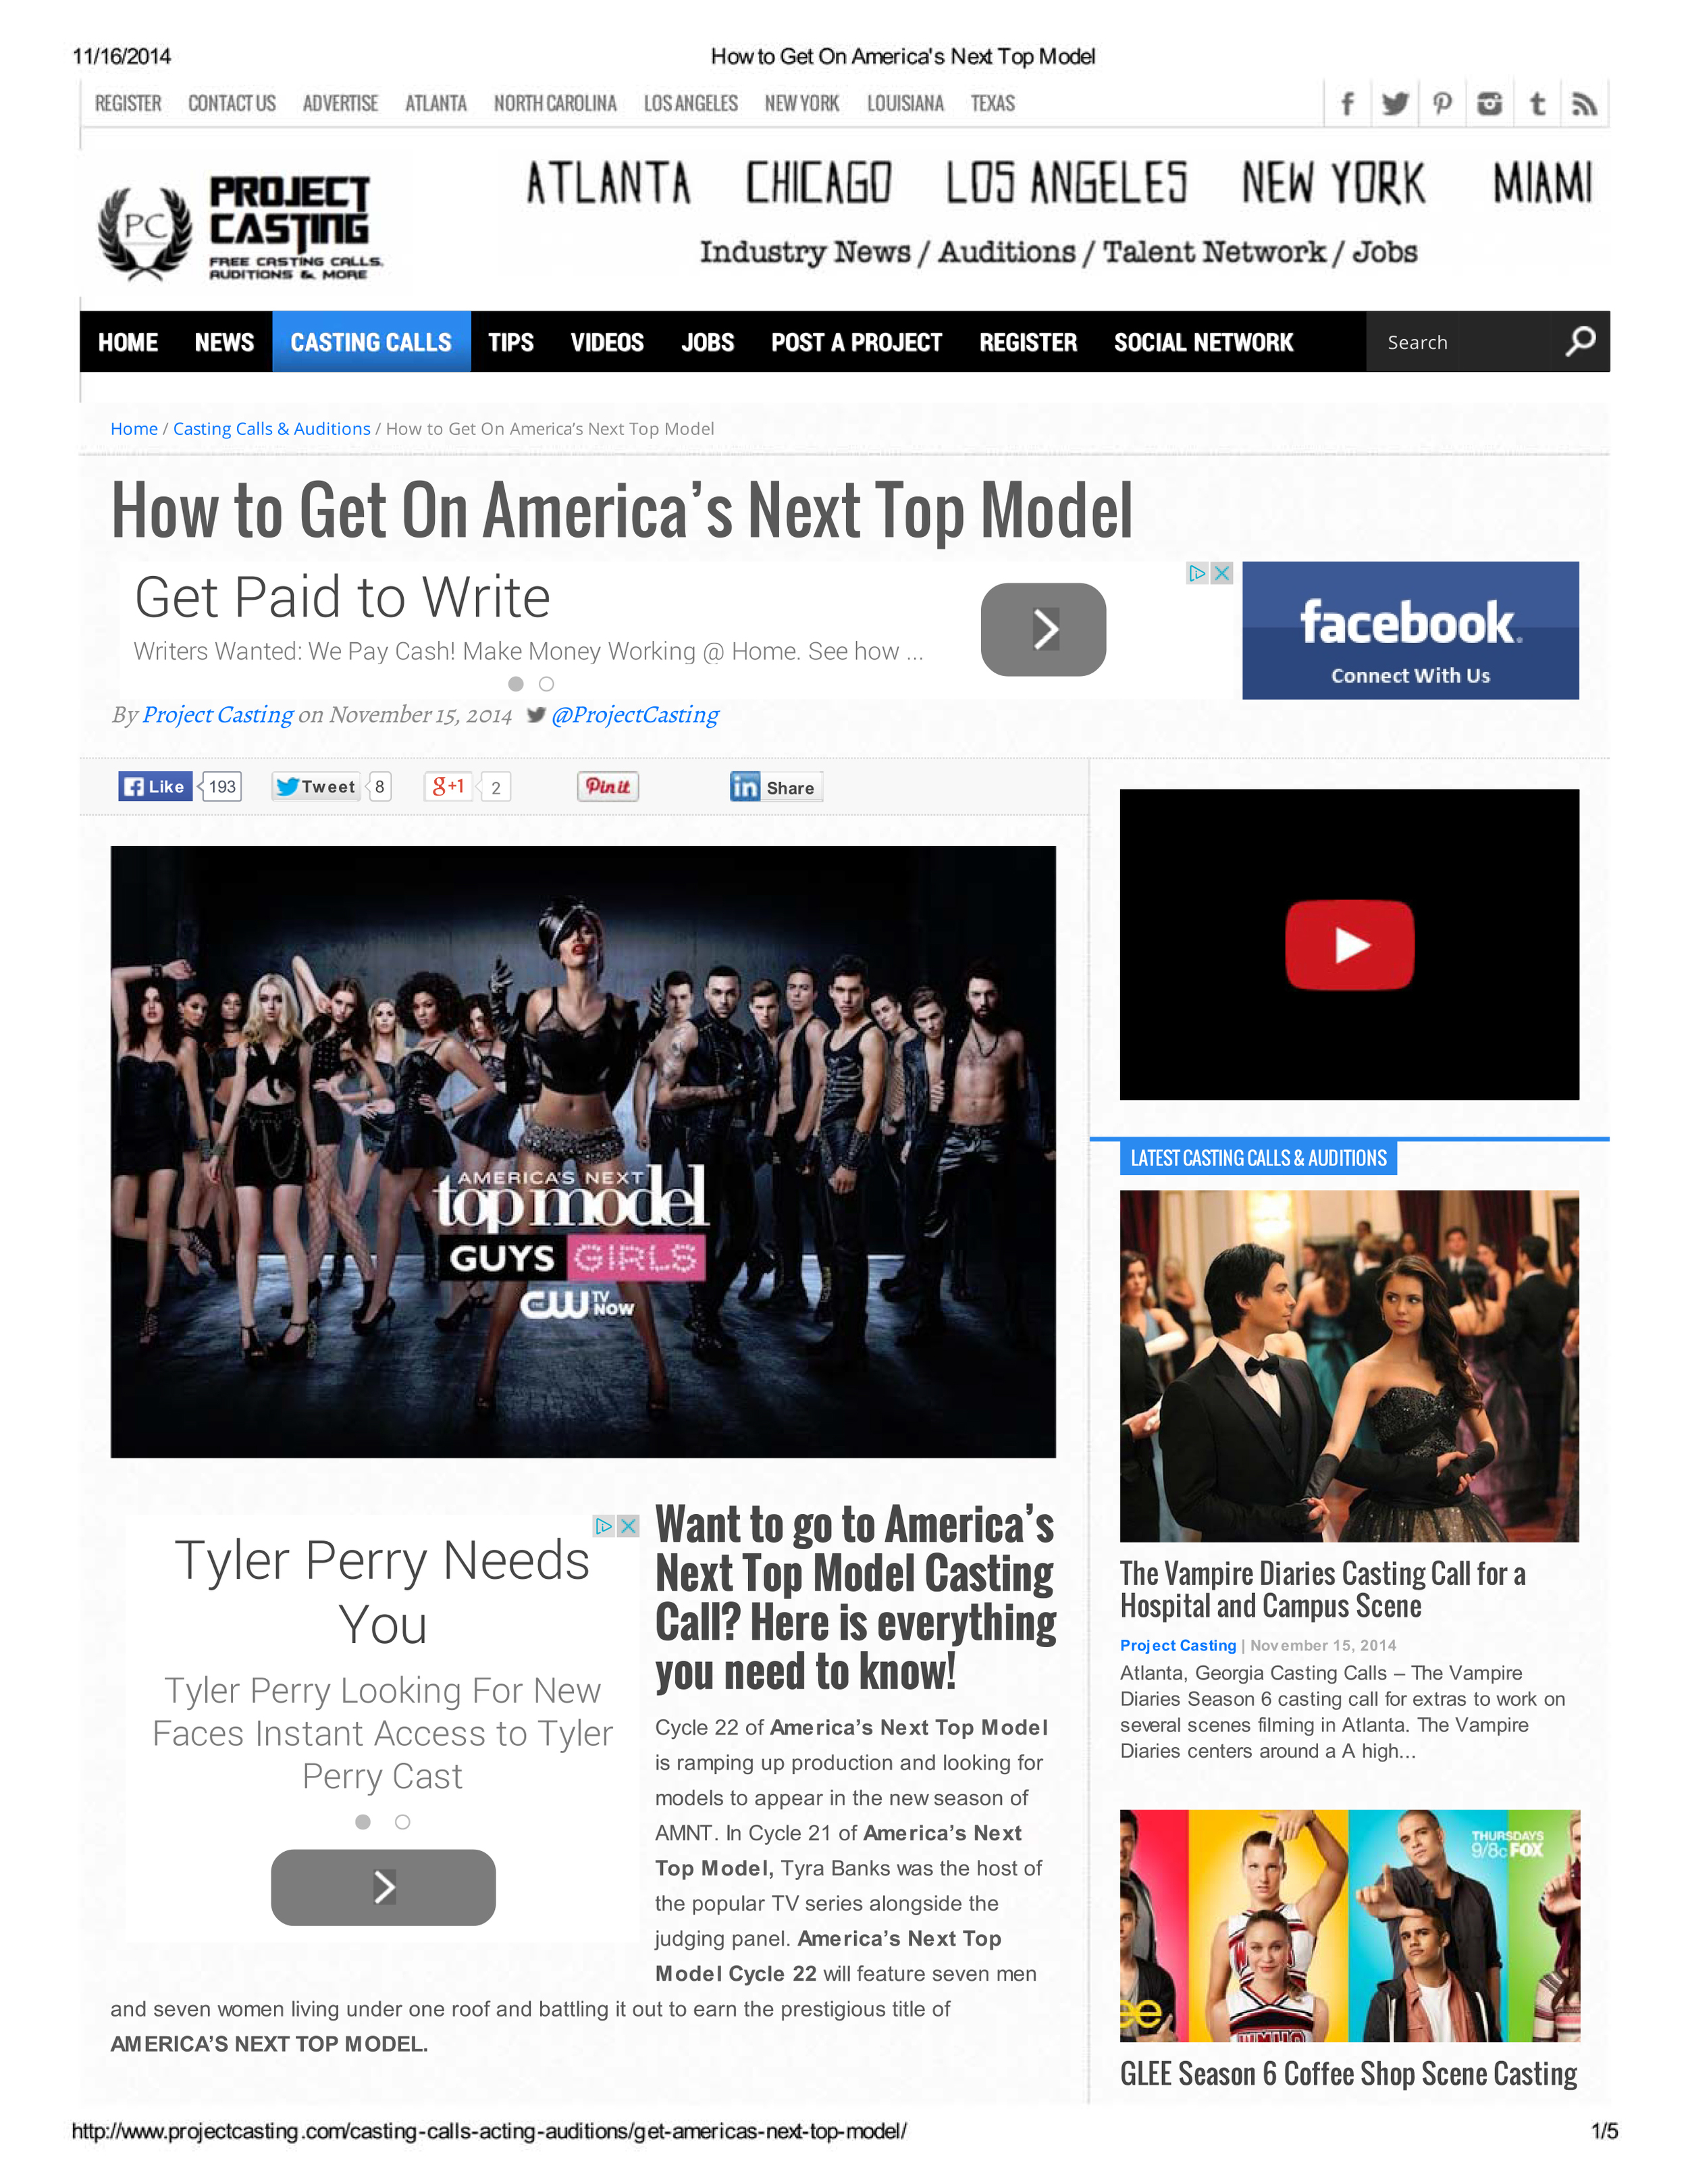 How to Get On America's Next Top Model